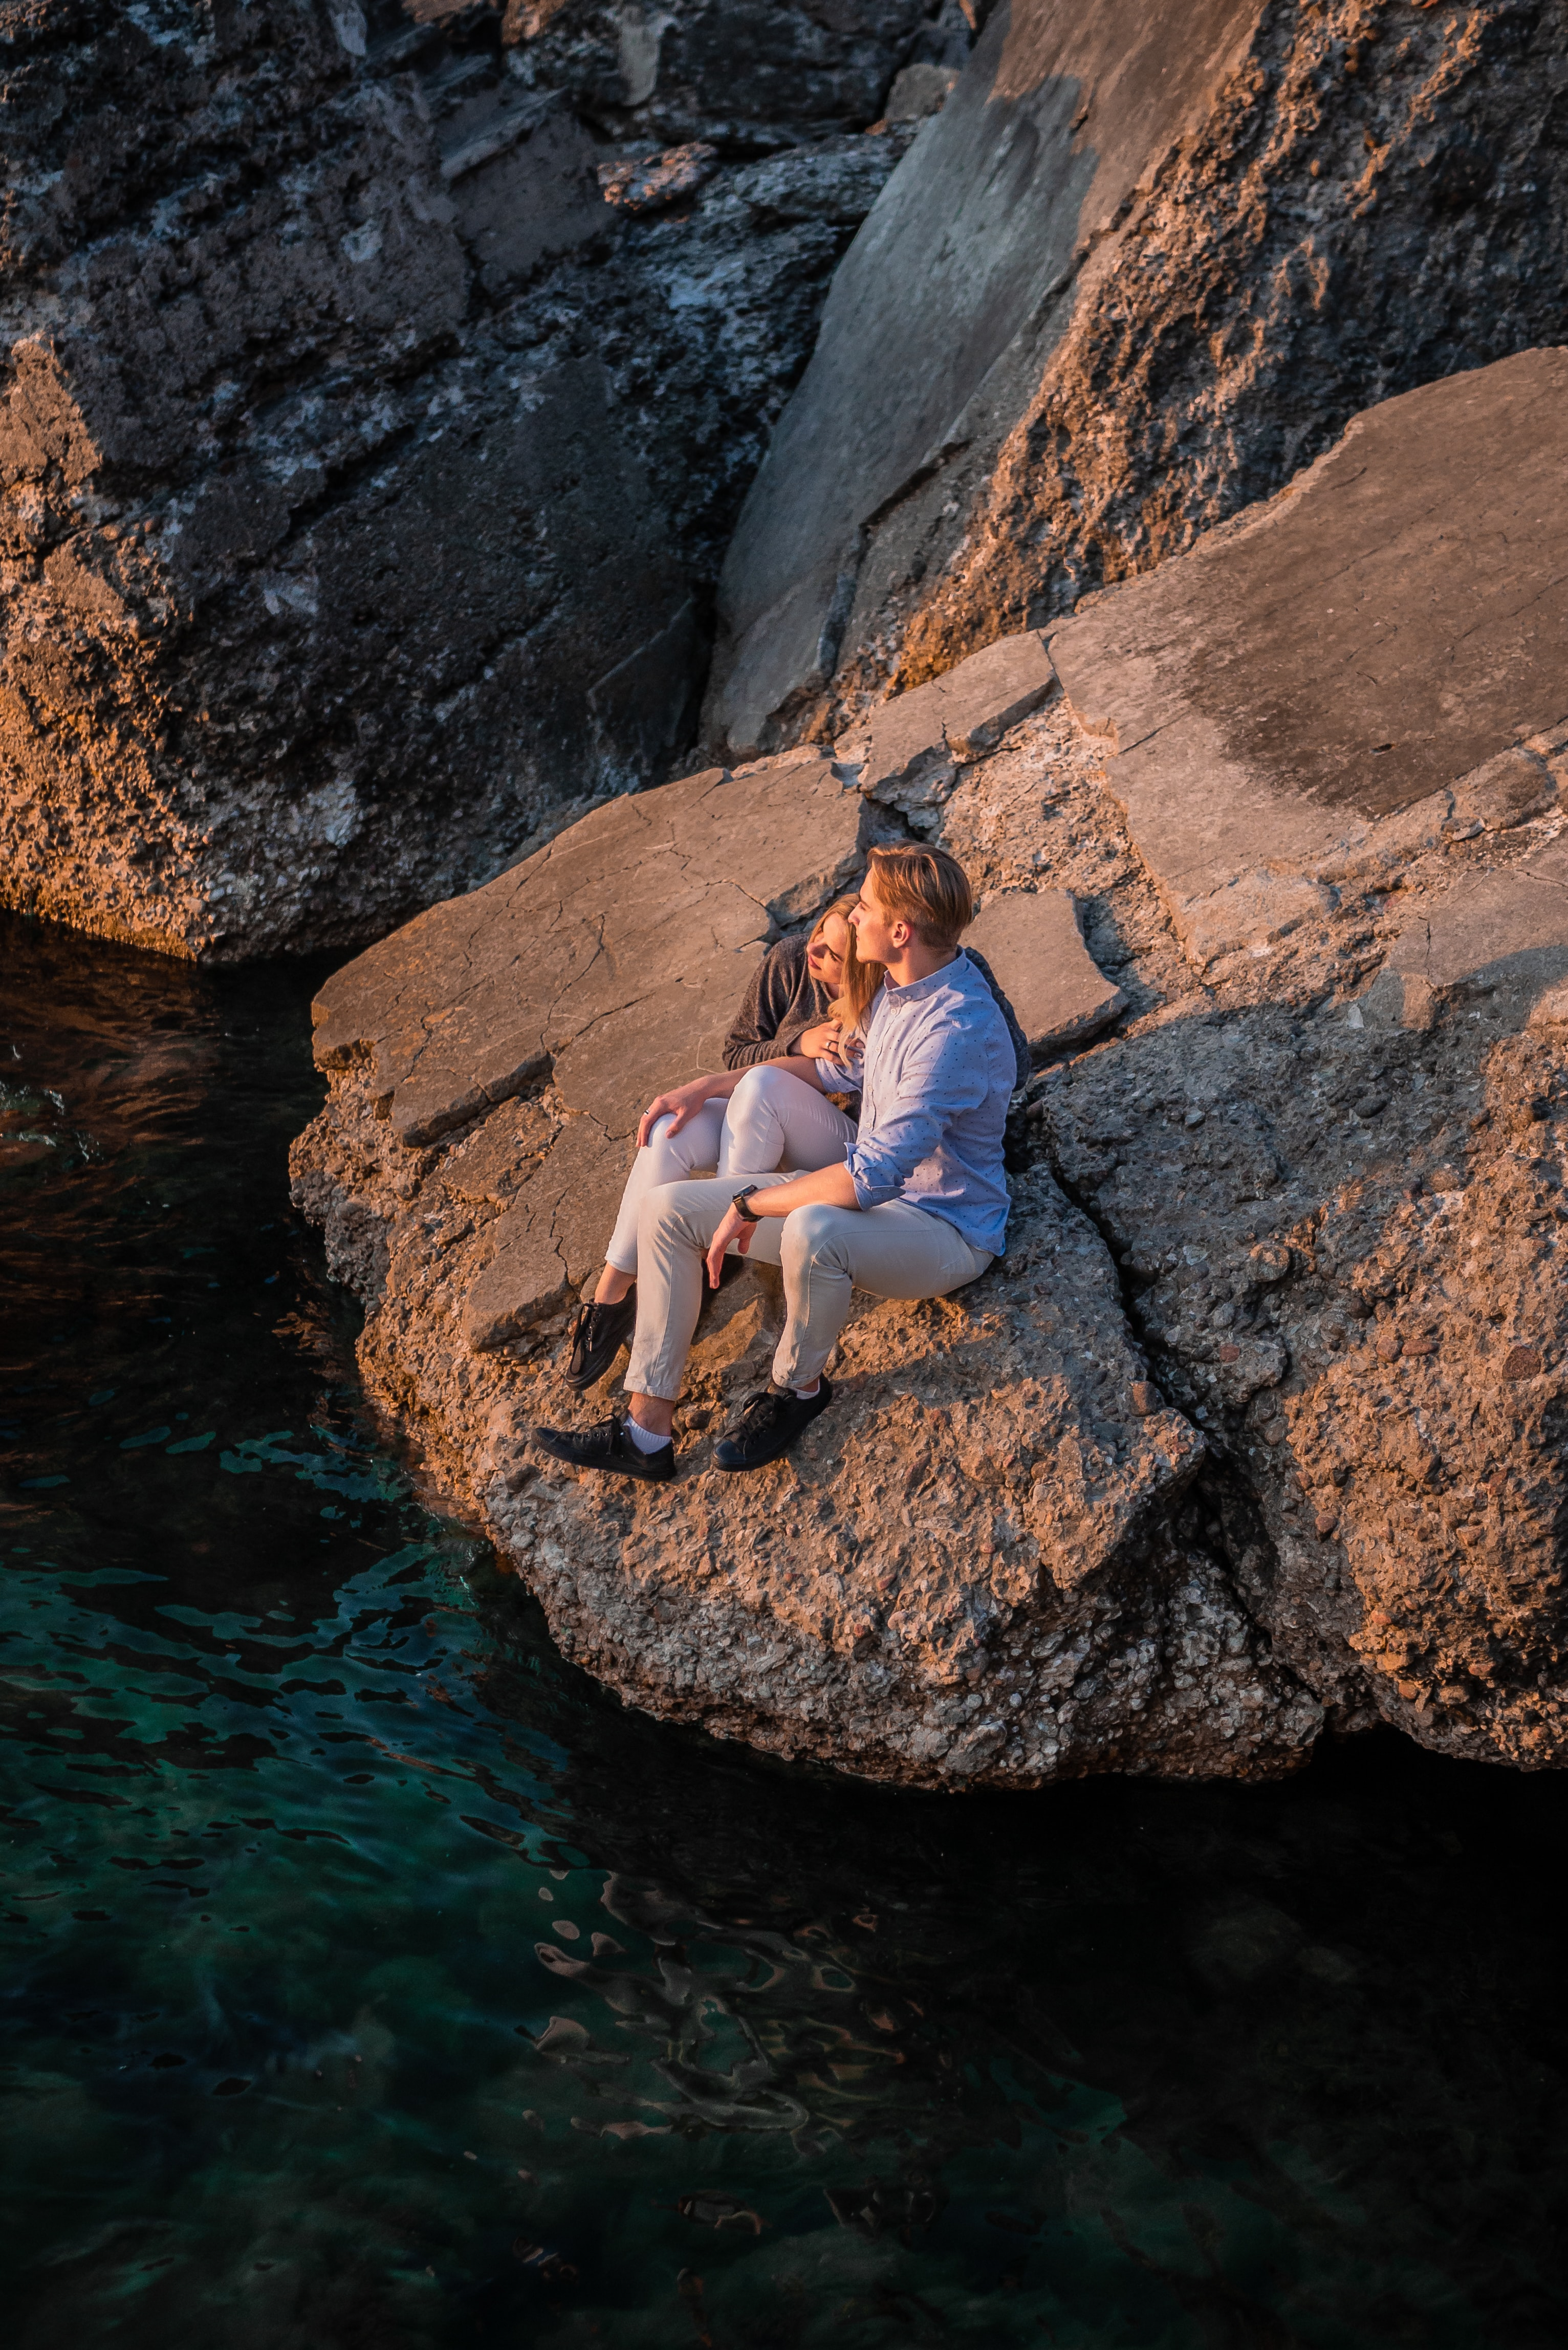 man and woman sitting on rock near body of water during daytime